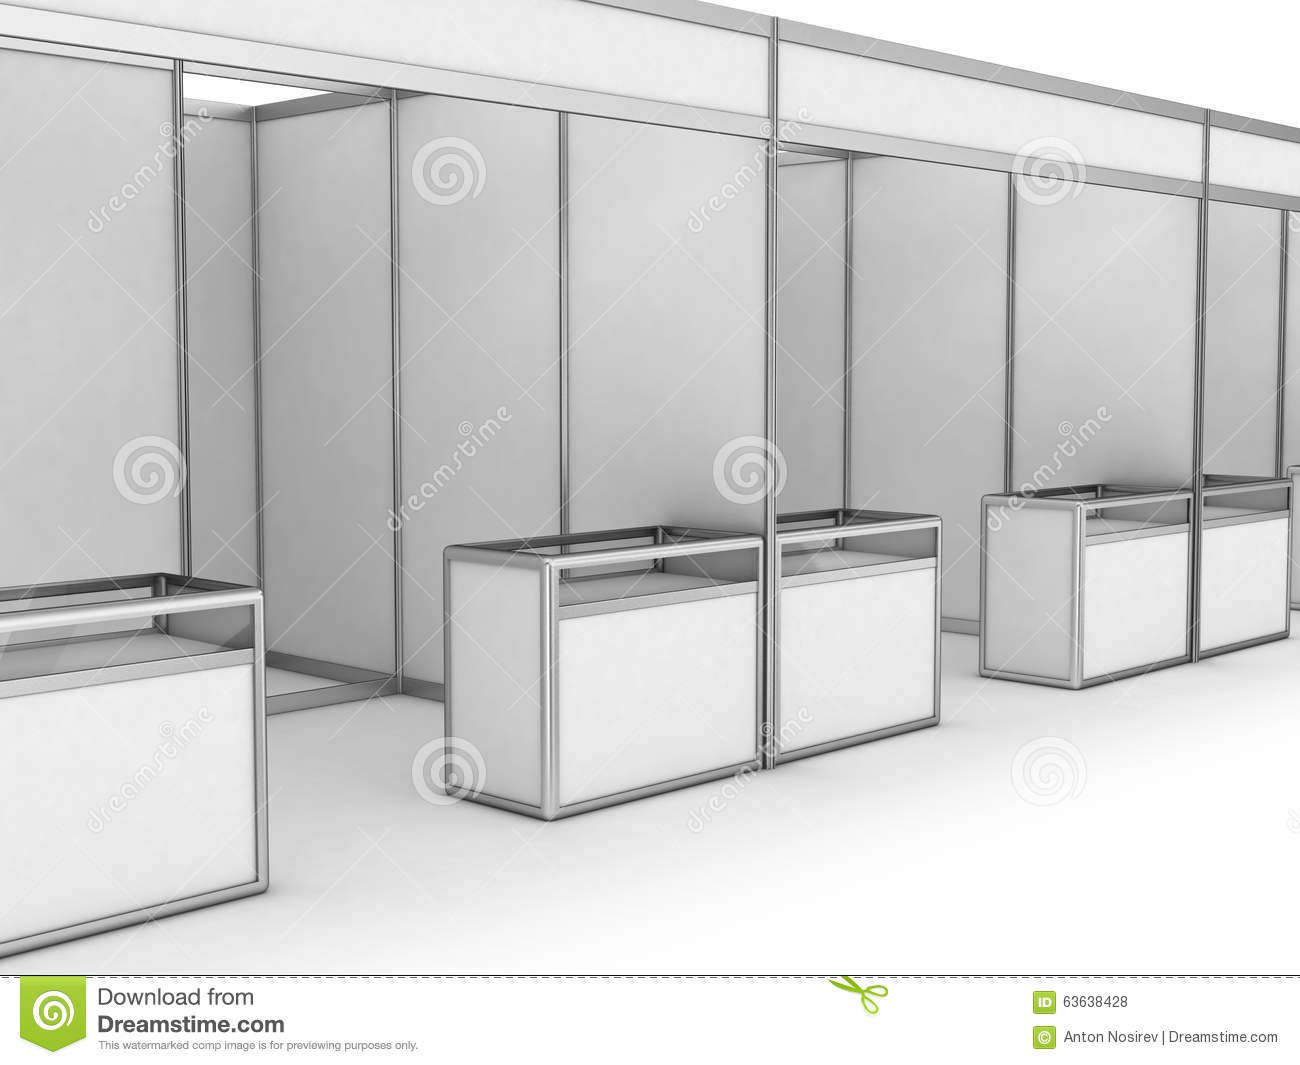 Exhibition Booth Blank : Blank indoor exhibition trade booth stock illustration